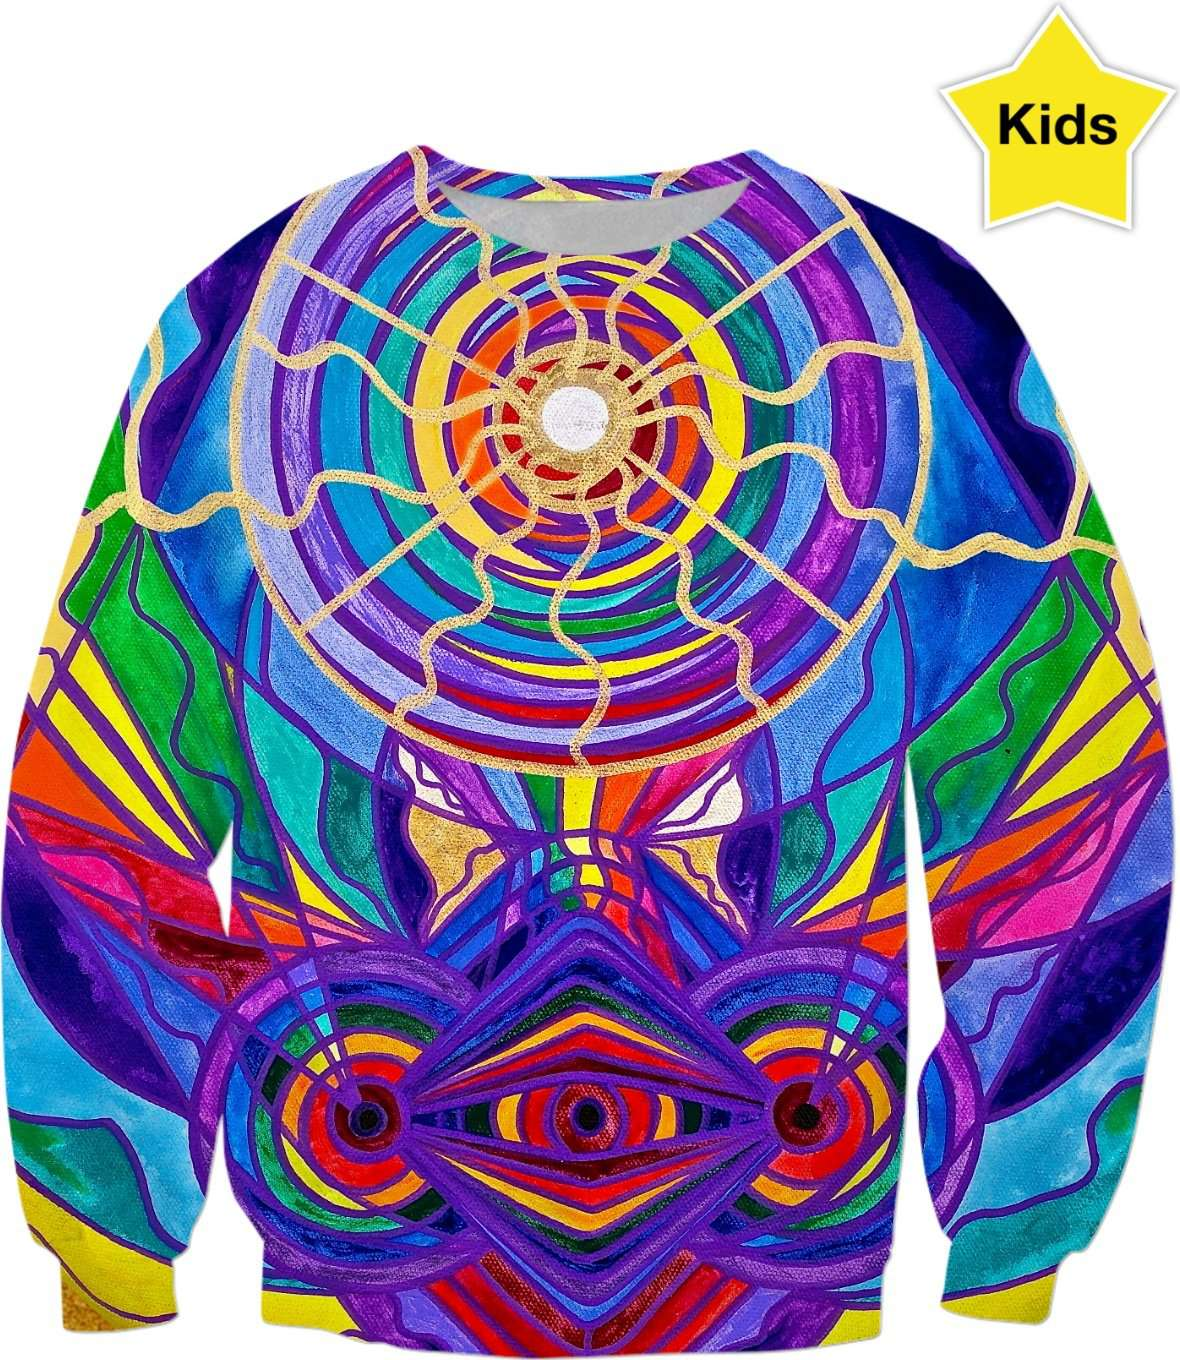 Raise Your Vibration - Kids Sweatshirt